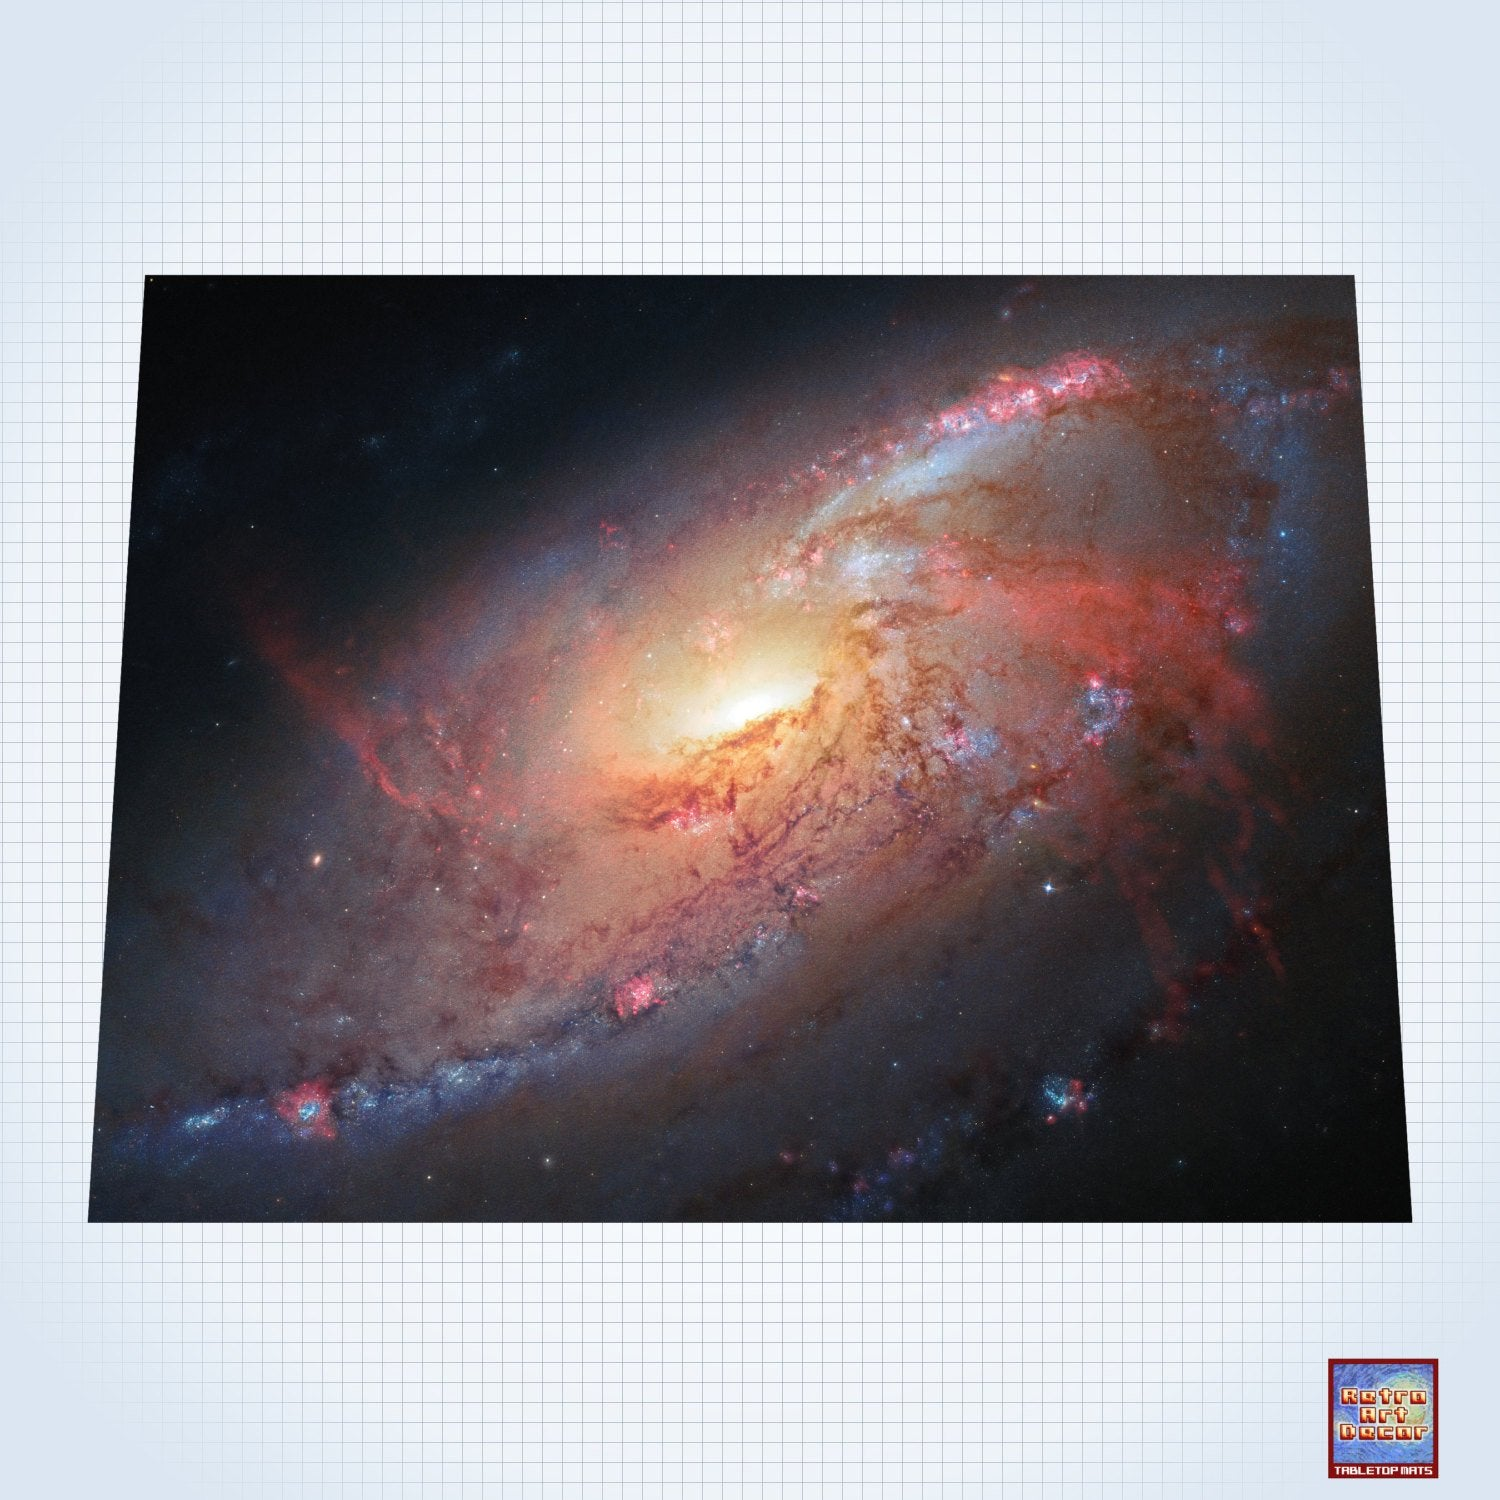 Space, Outer Edges of a Supermassive Black Hole – #GM103 – 60″ x 80″ (4' x 6' plus) Fleece Table Top Gaming Mat